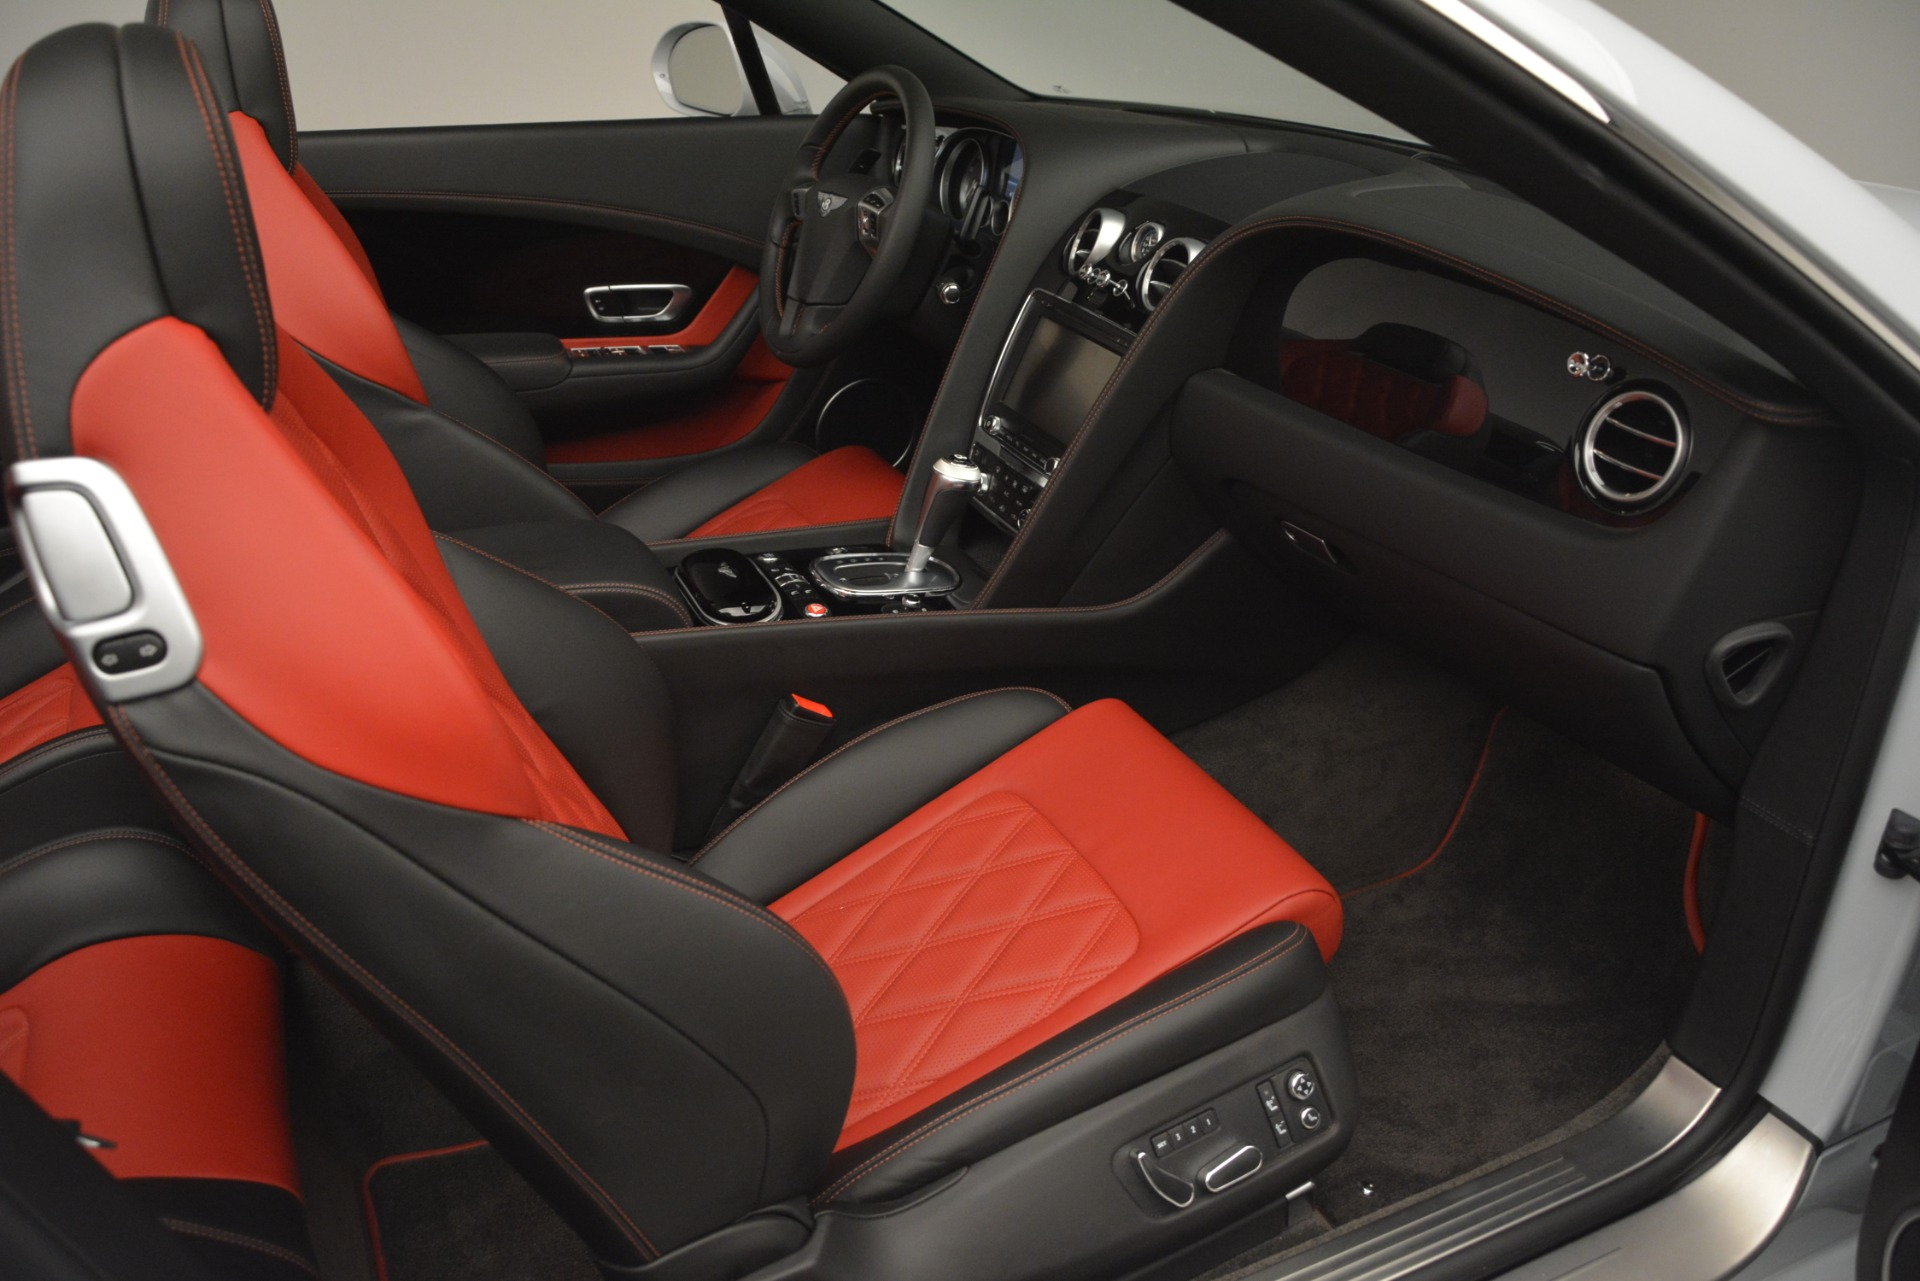 Used 2014 Bentley Continental GT V8 S For Sale In Westport, CT 3011_p32